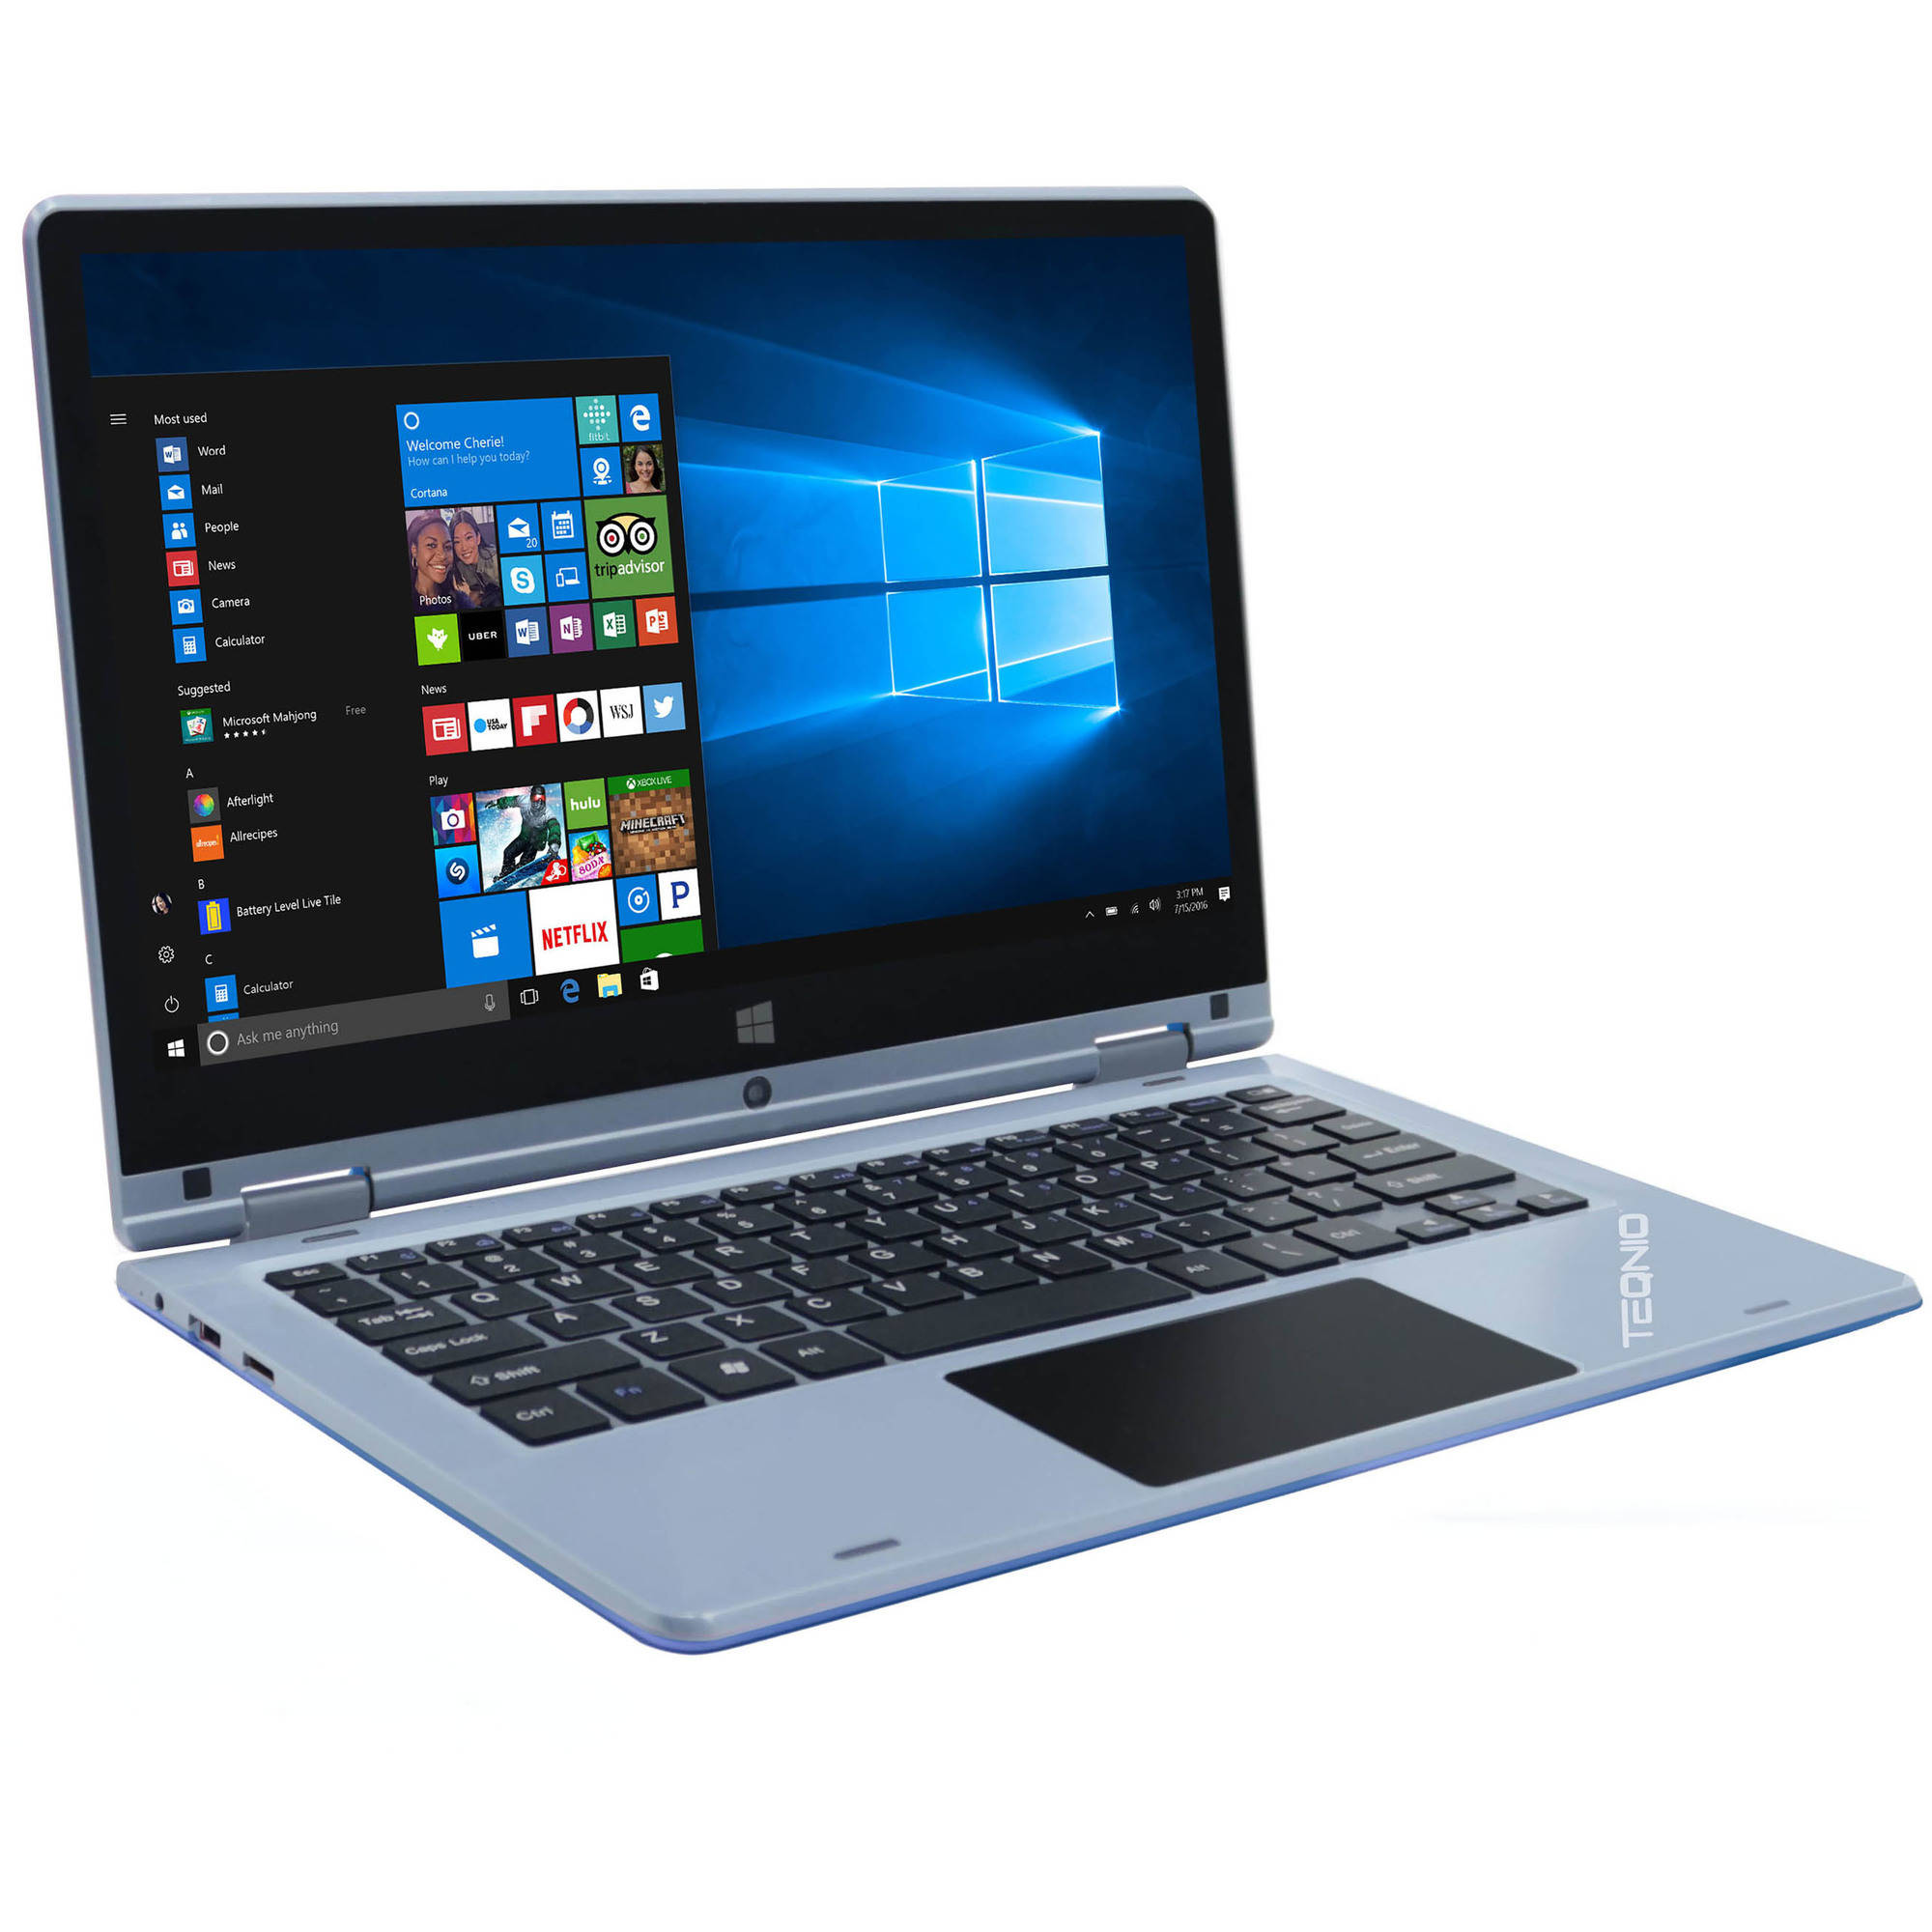 "Teqnio ELL1103T 11.6"" Laptop, Touchscreen, 2-in-1, Windows 10 Home, Intel Cherrytrail Z8350 Processor, 2GB RAM, 32GB Flash Drive"